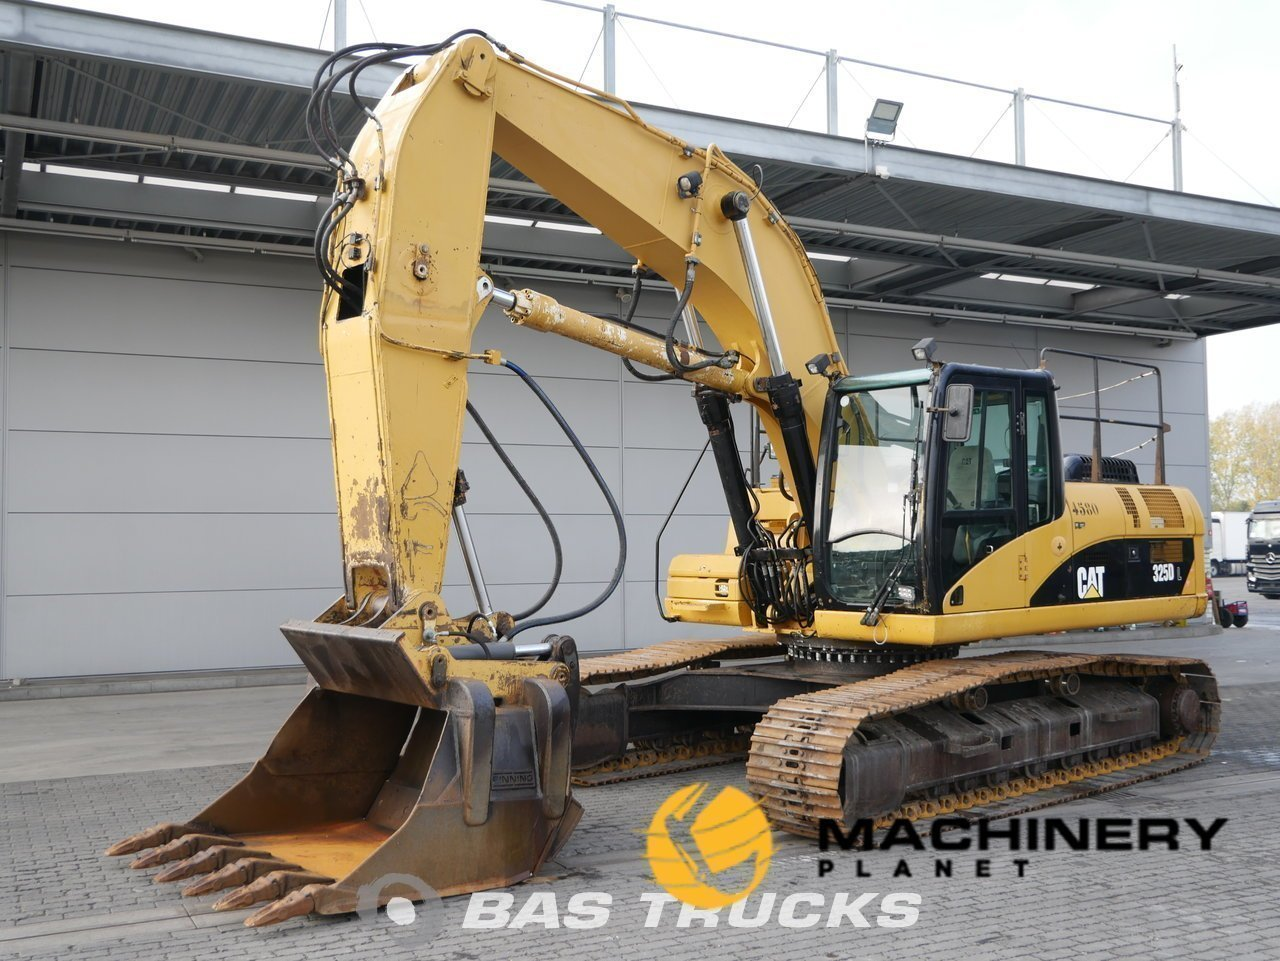 Used-Construction-equipment-Caterpillar-325DL-Track-2008_142906_1-1554125685846_5ca21375cea05-1.jpg